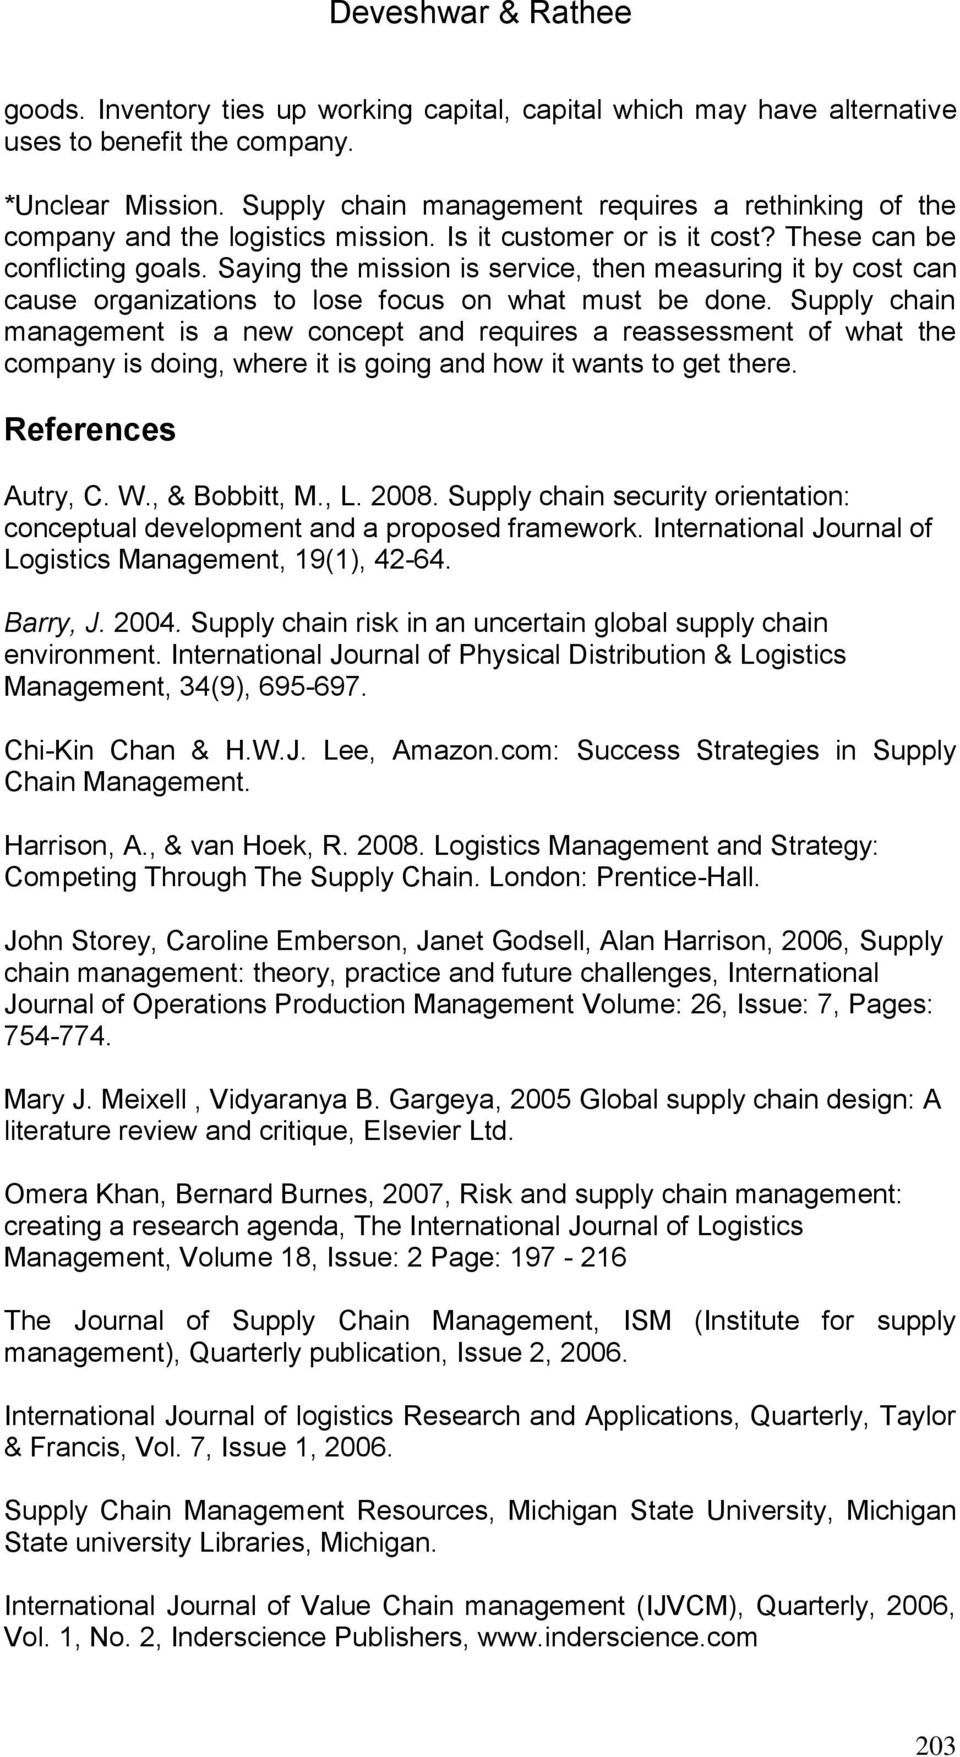 Challenges For Supply Chain Management In Today s Global